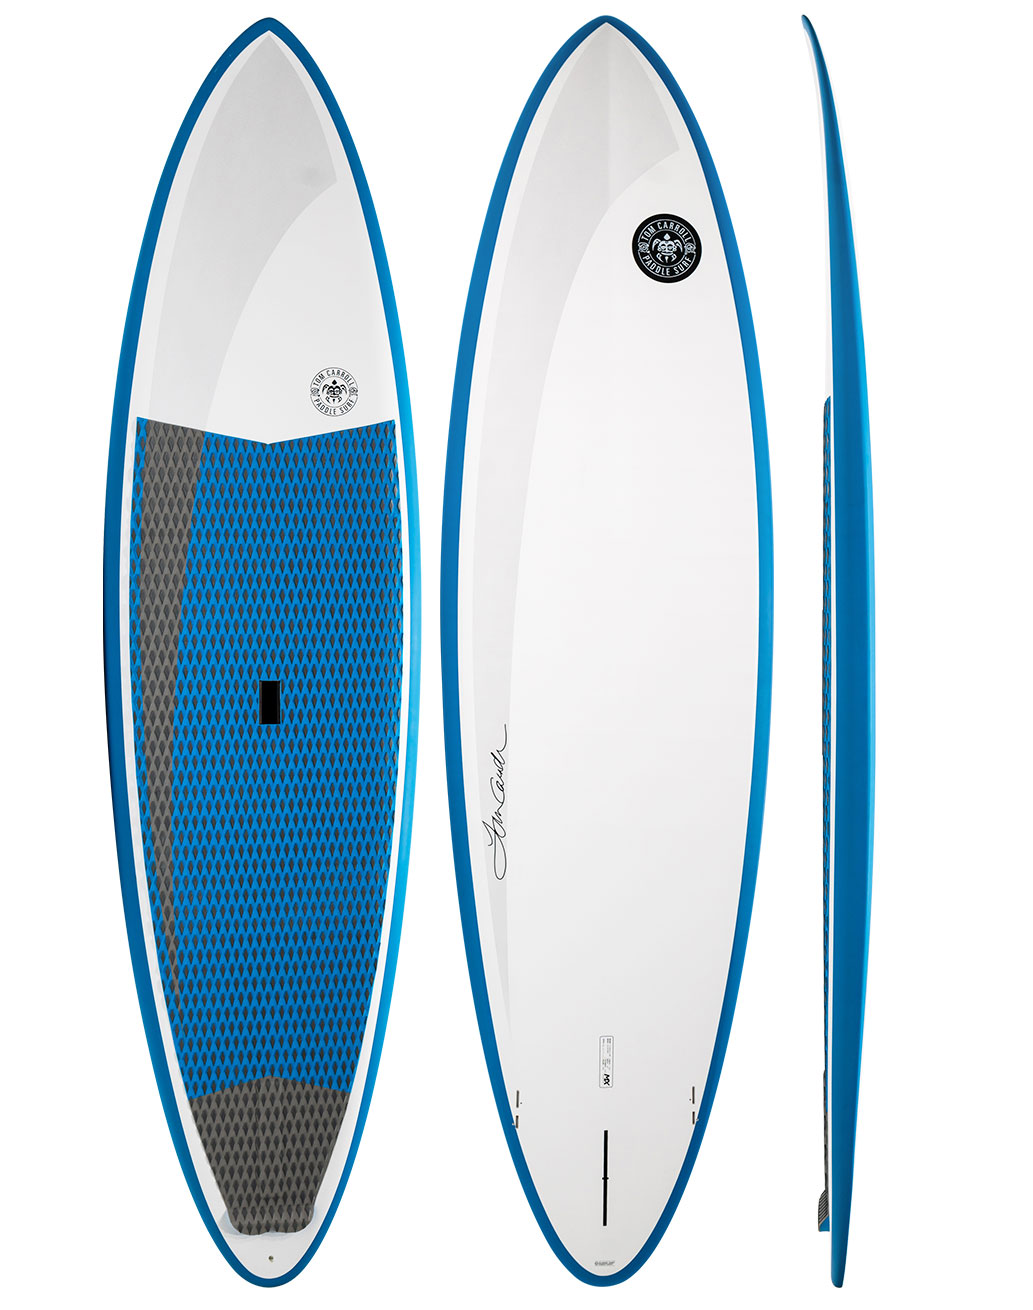 Tom Carroll Paddle Surf Outer Reef SUP - MX technology